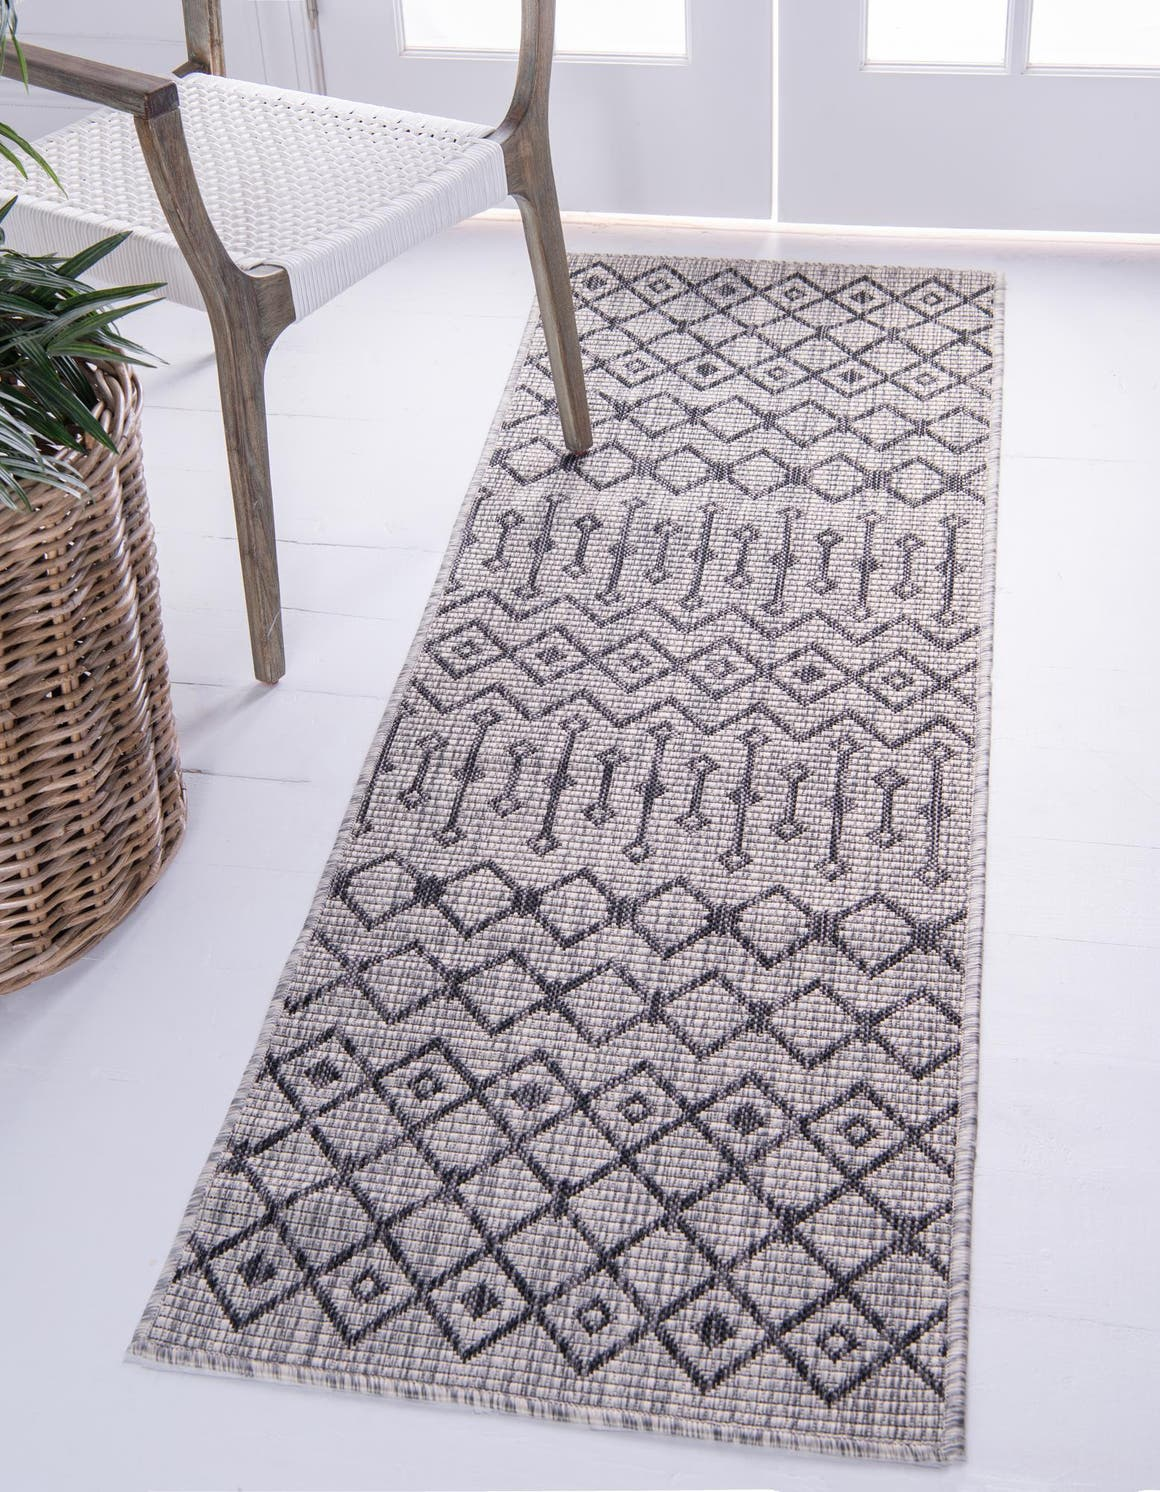 2' x 6' Outdoor Lattice Runner Rug main image